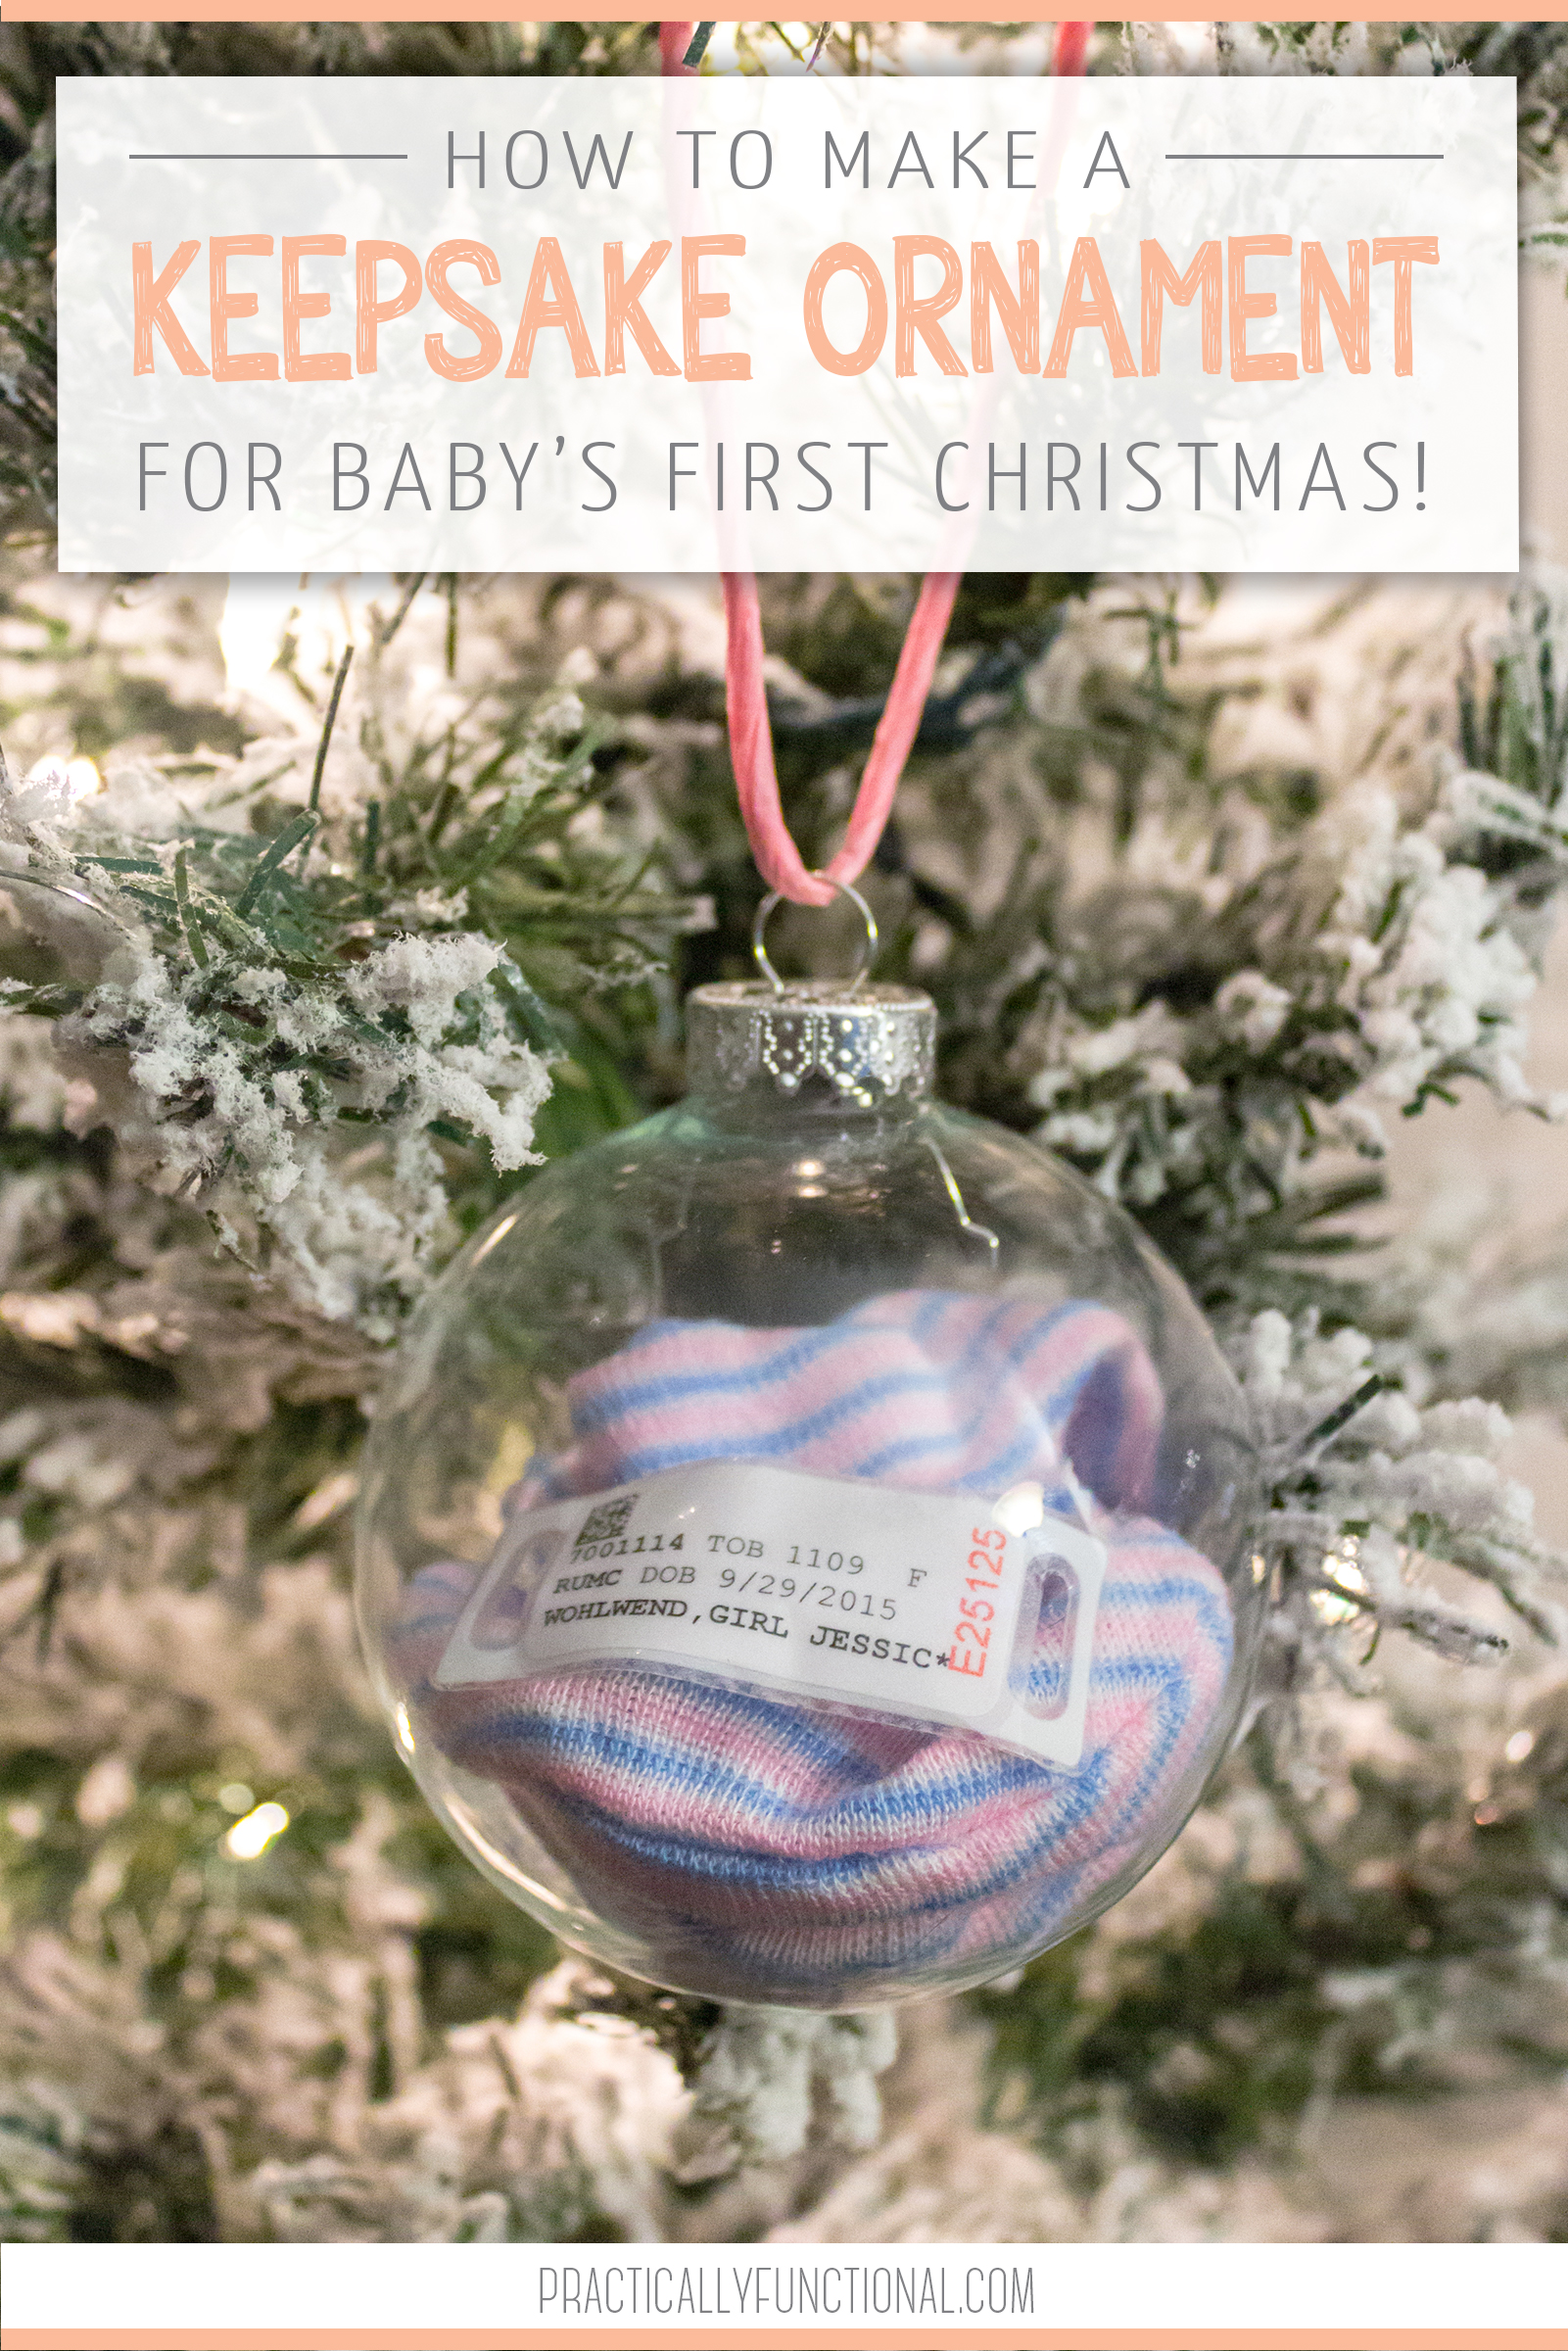 Make your babys first christmas ornament with their hat and hospital bracelet